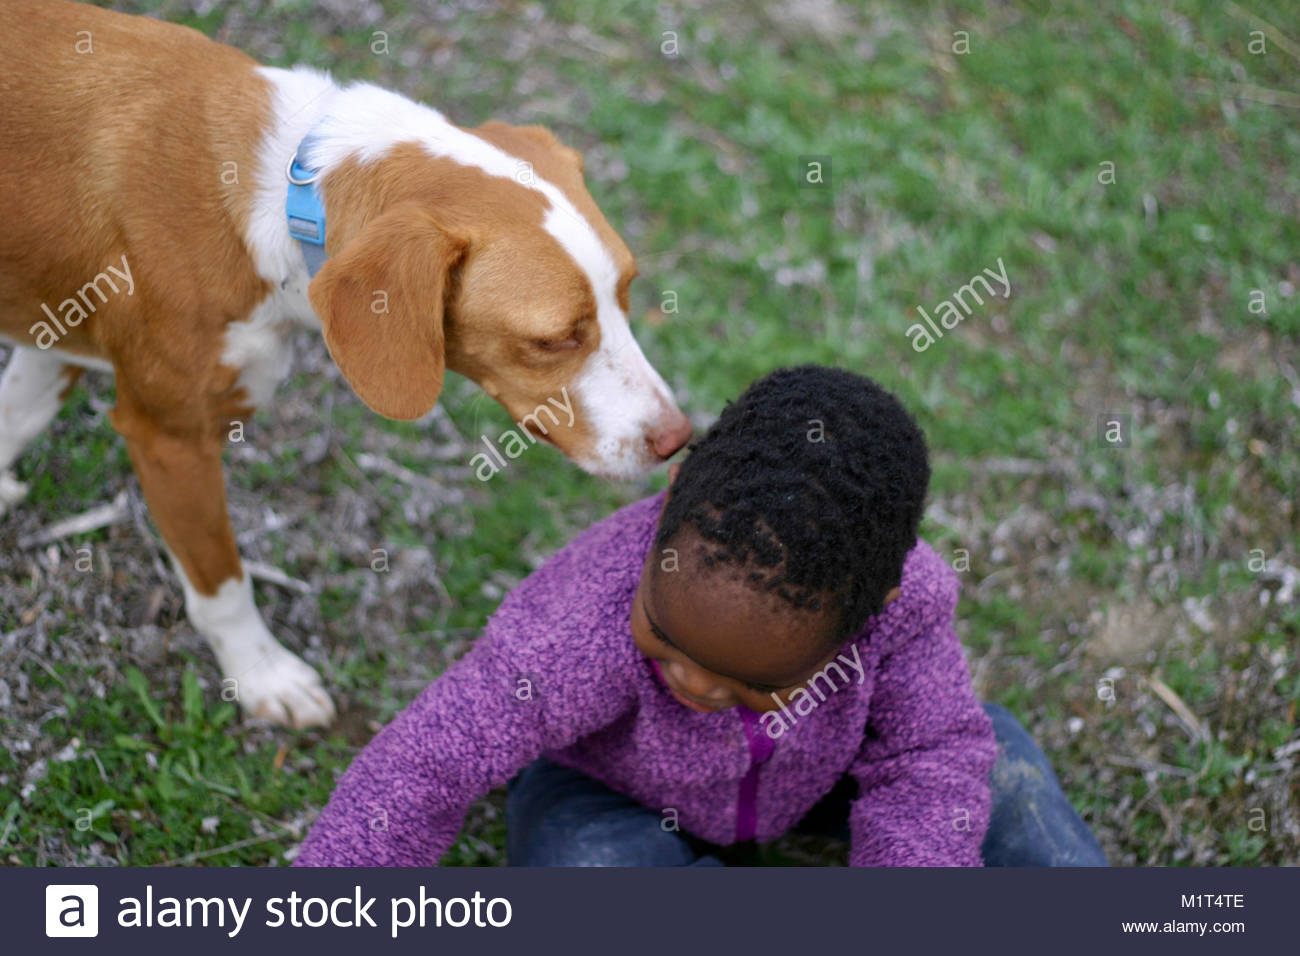 Young boy sitting on grass and playing in park with a dog - Stock Image